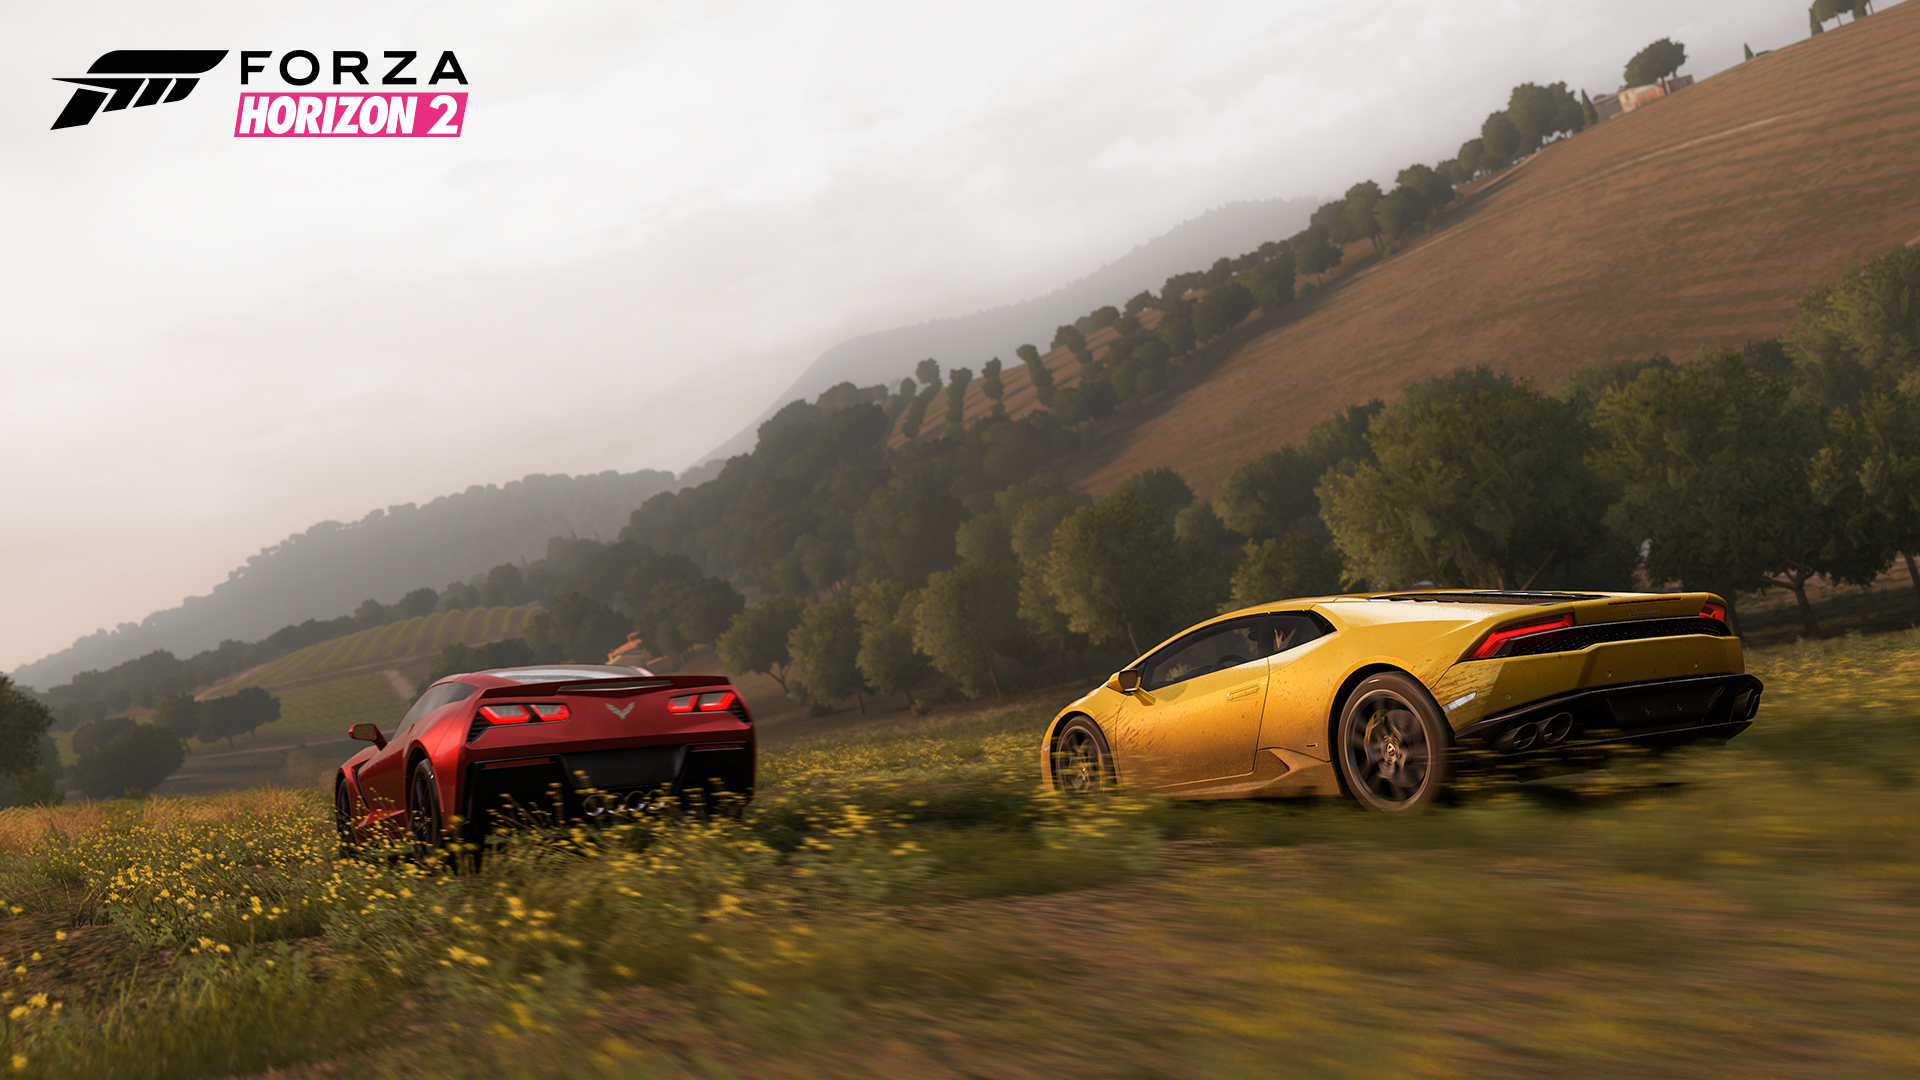 Forza Horizon 2 Xbox One screenshot